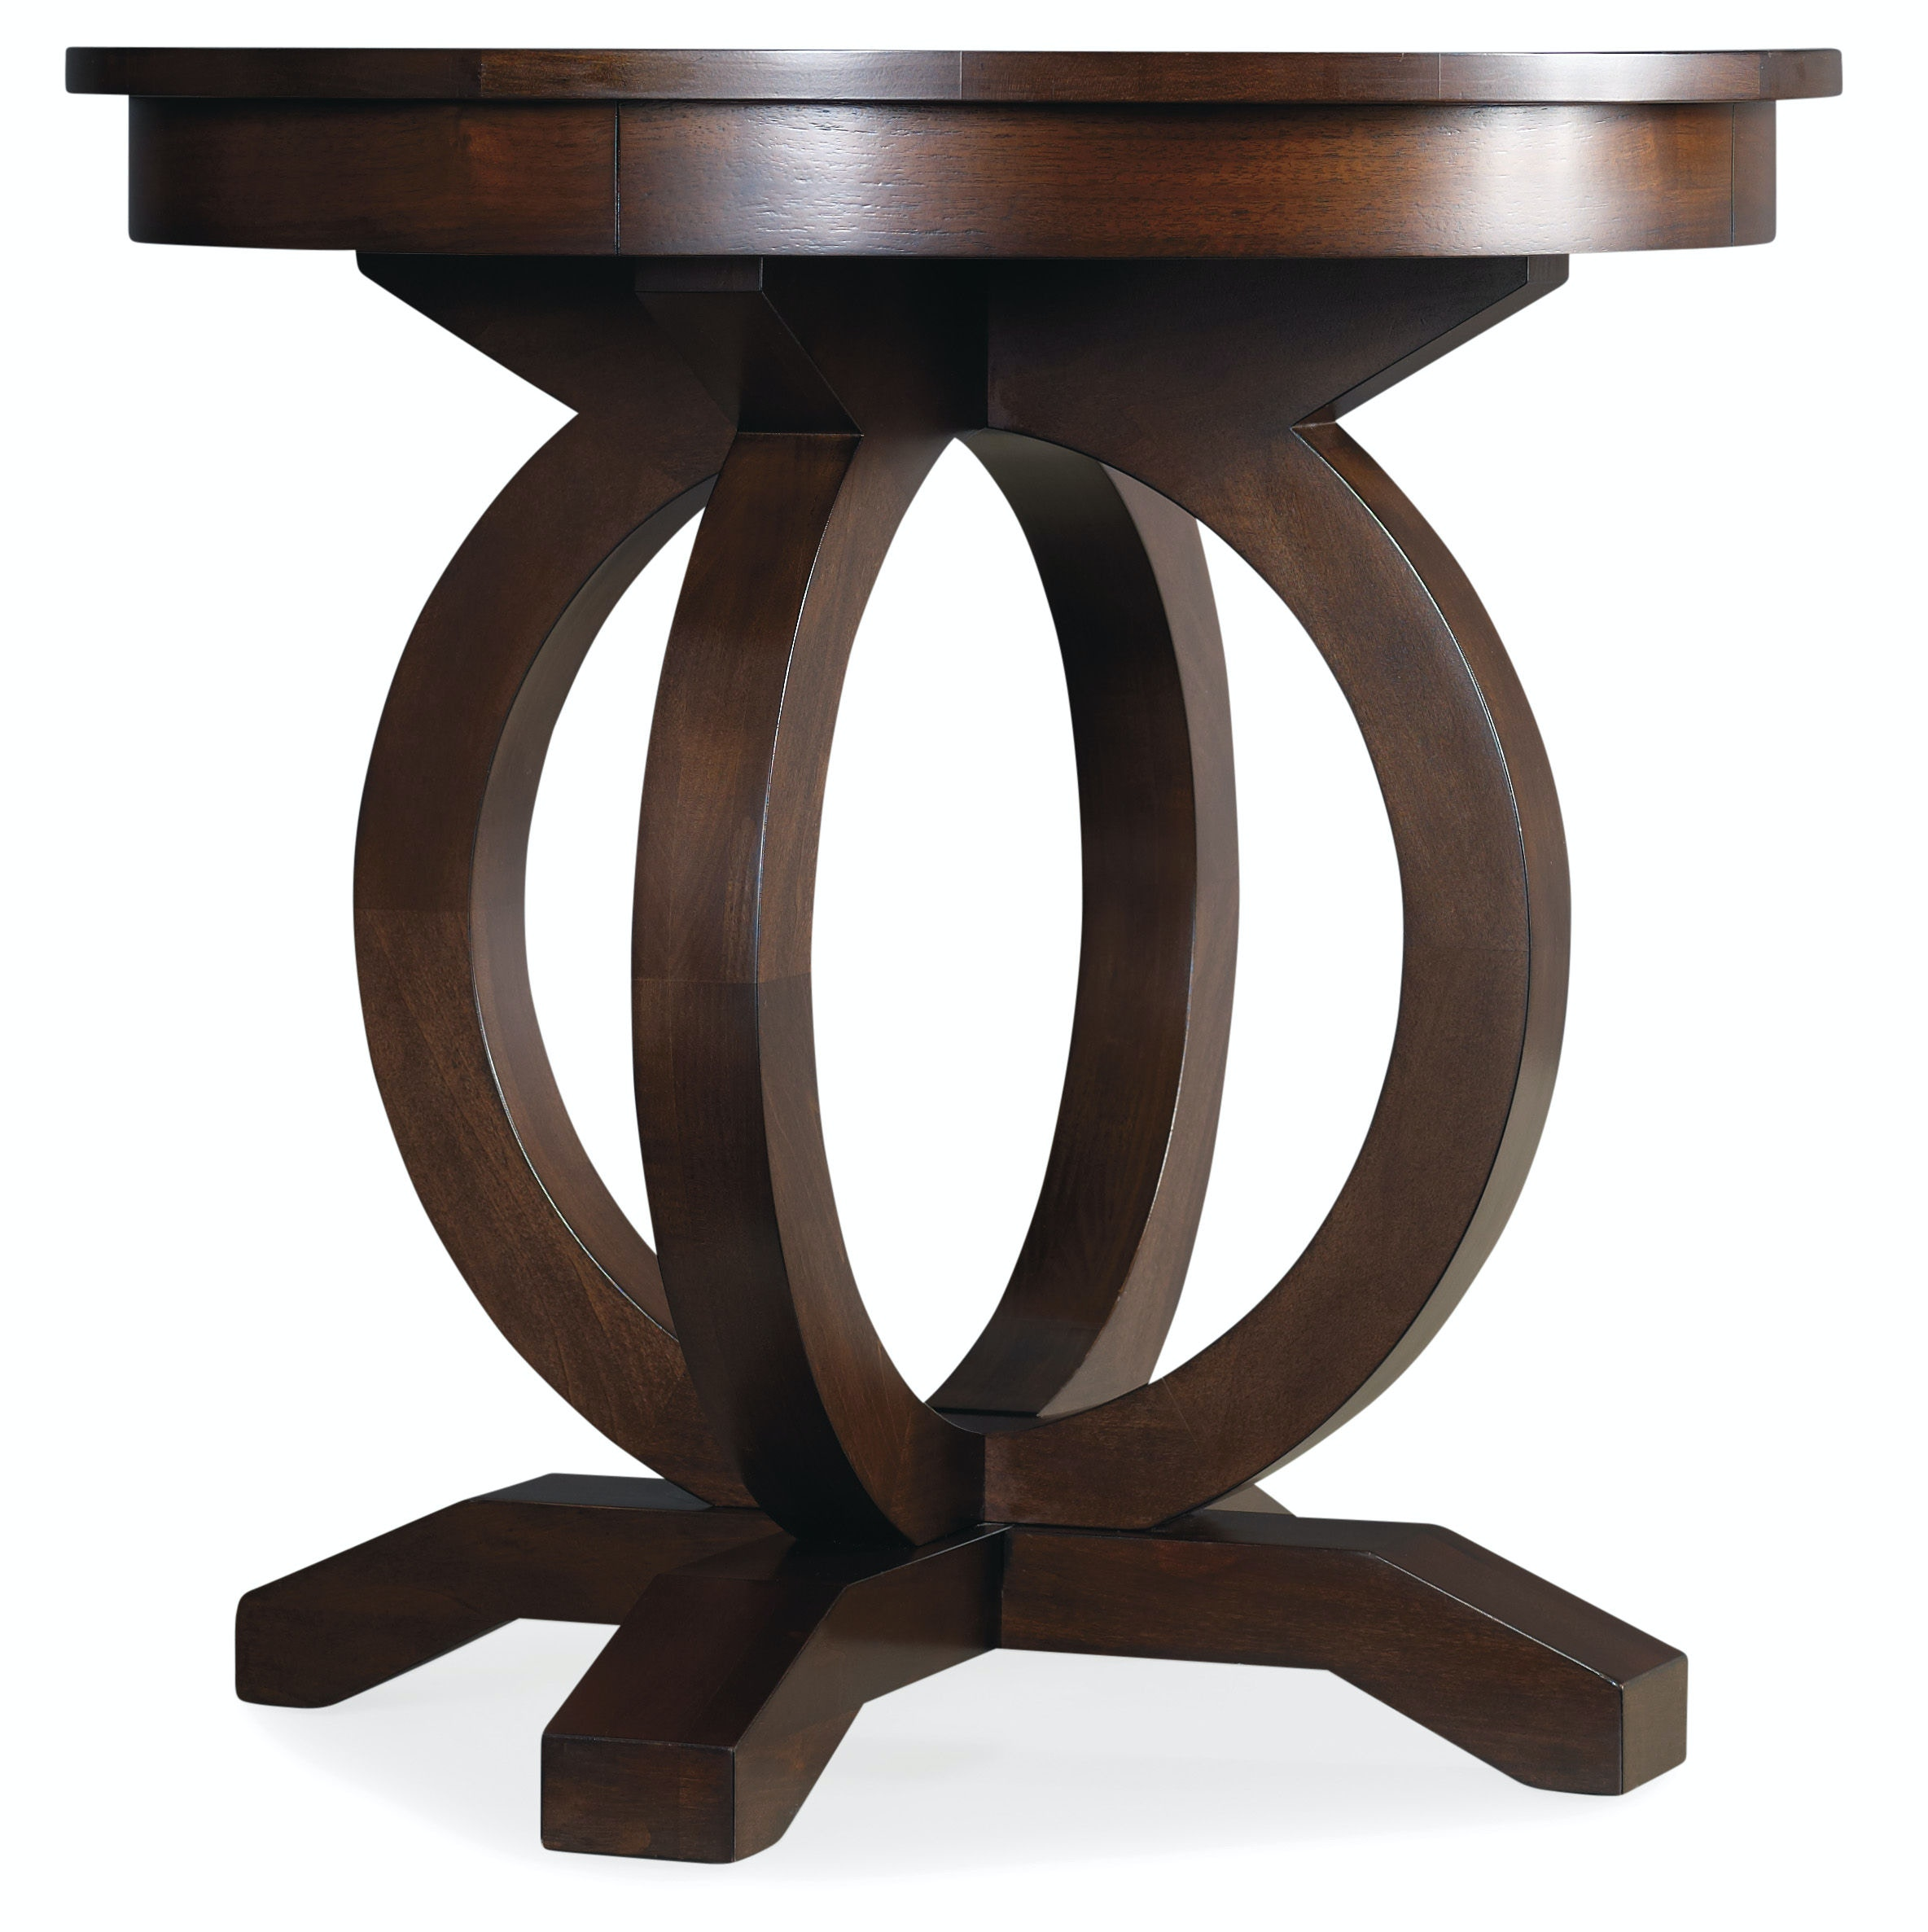 living room table decorated with accent pieces. bouchet side table